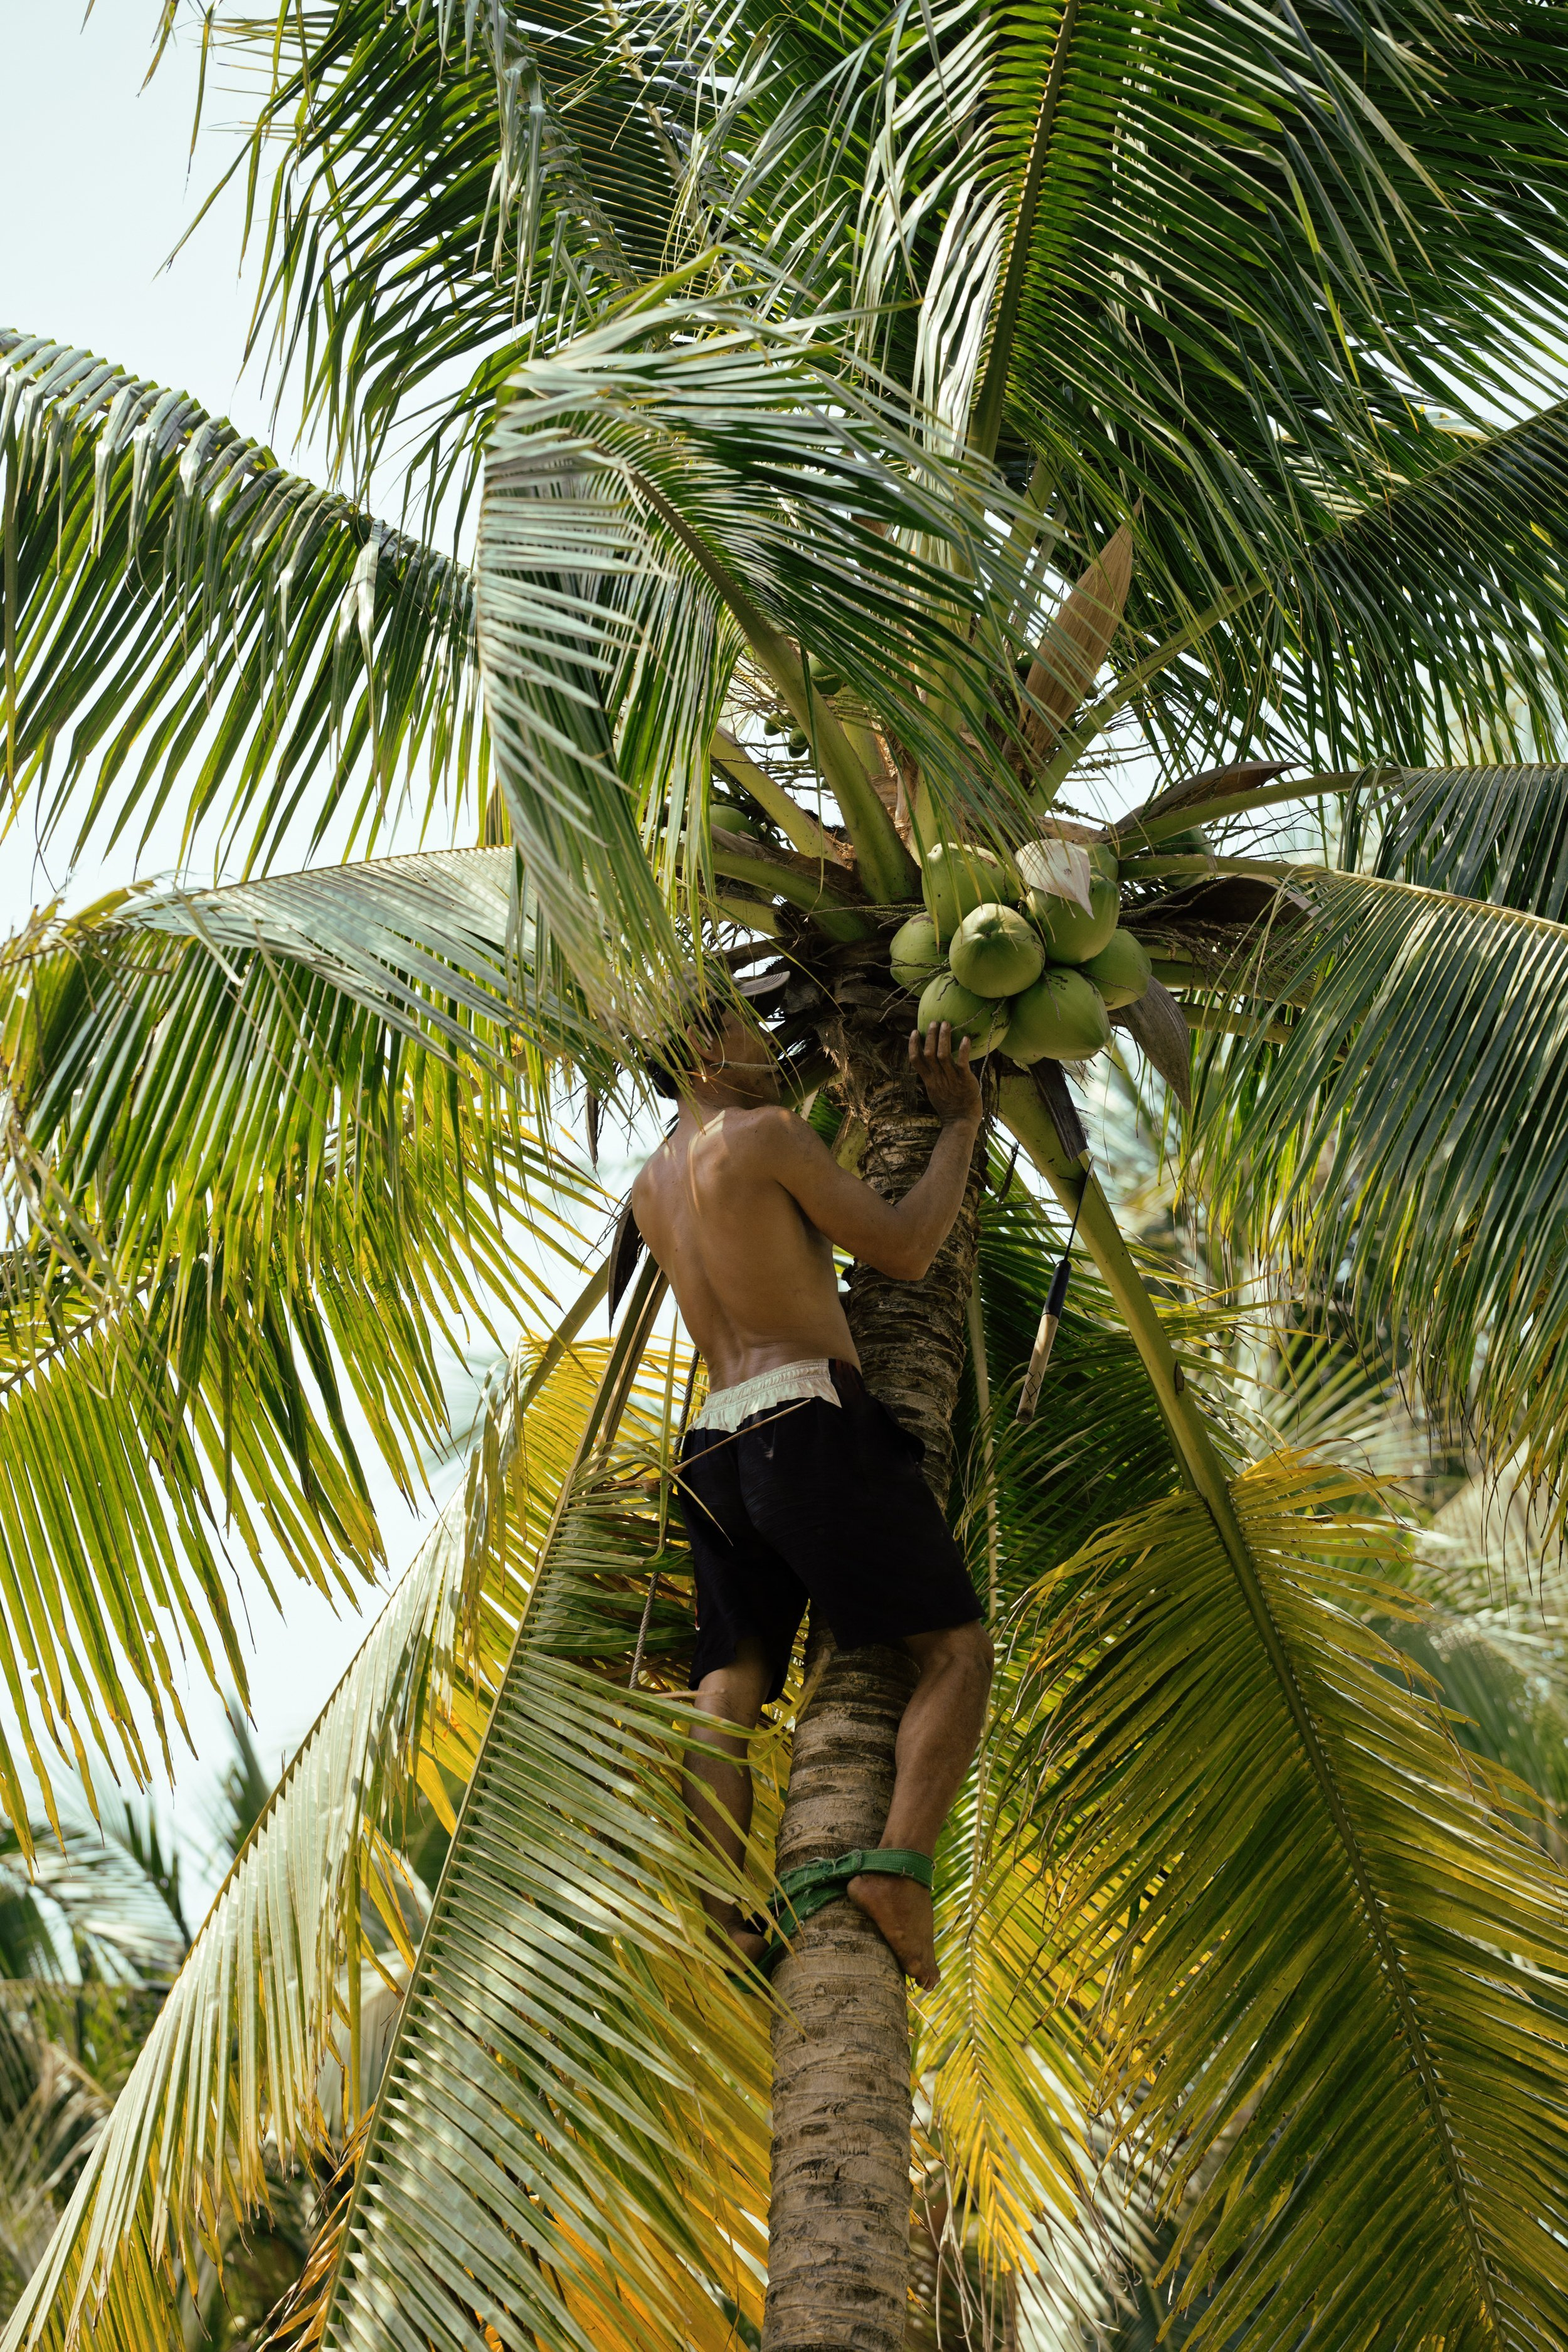 A man picking coconuts from a tree. | Source: Shutterstock.